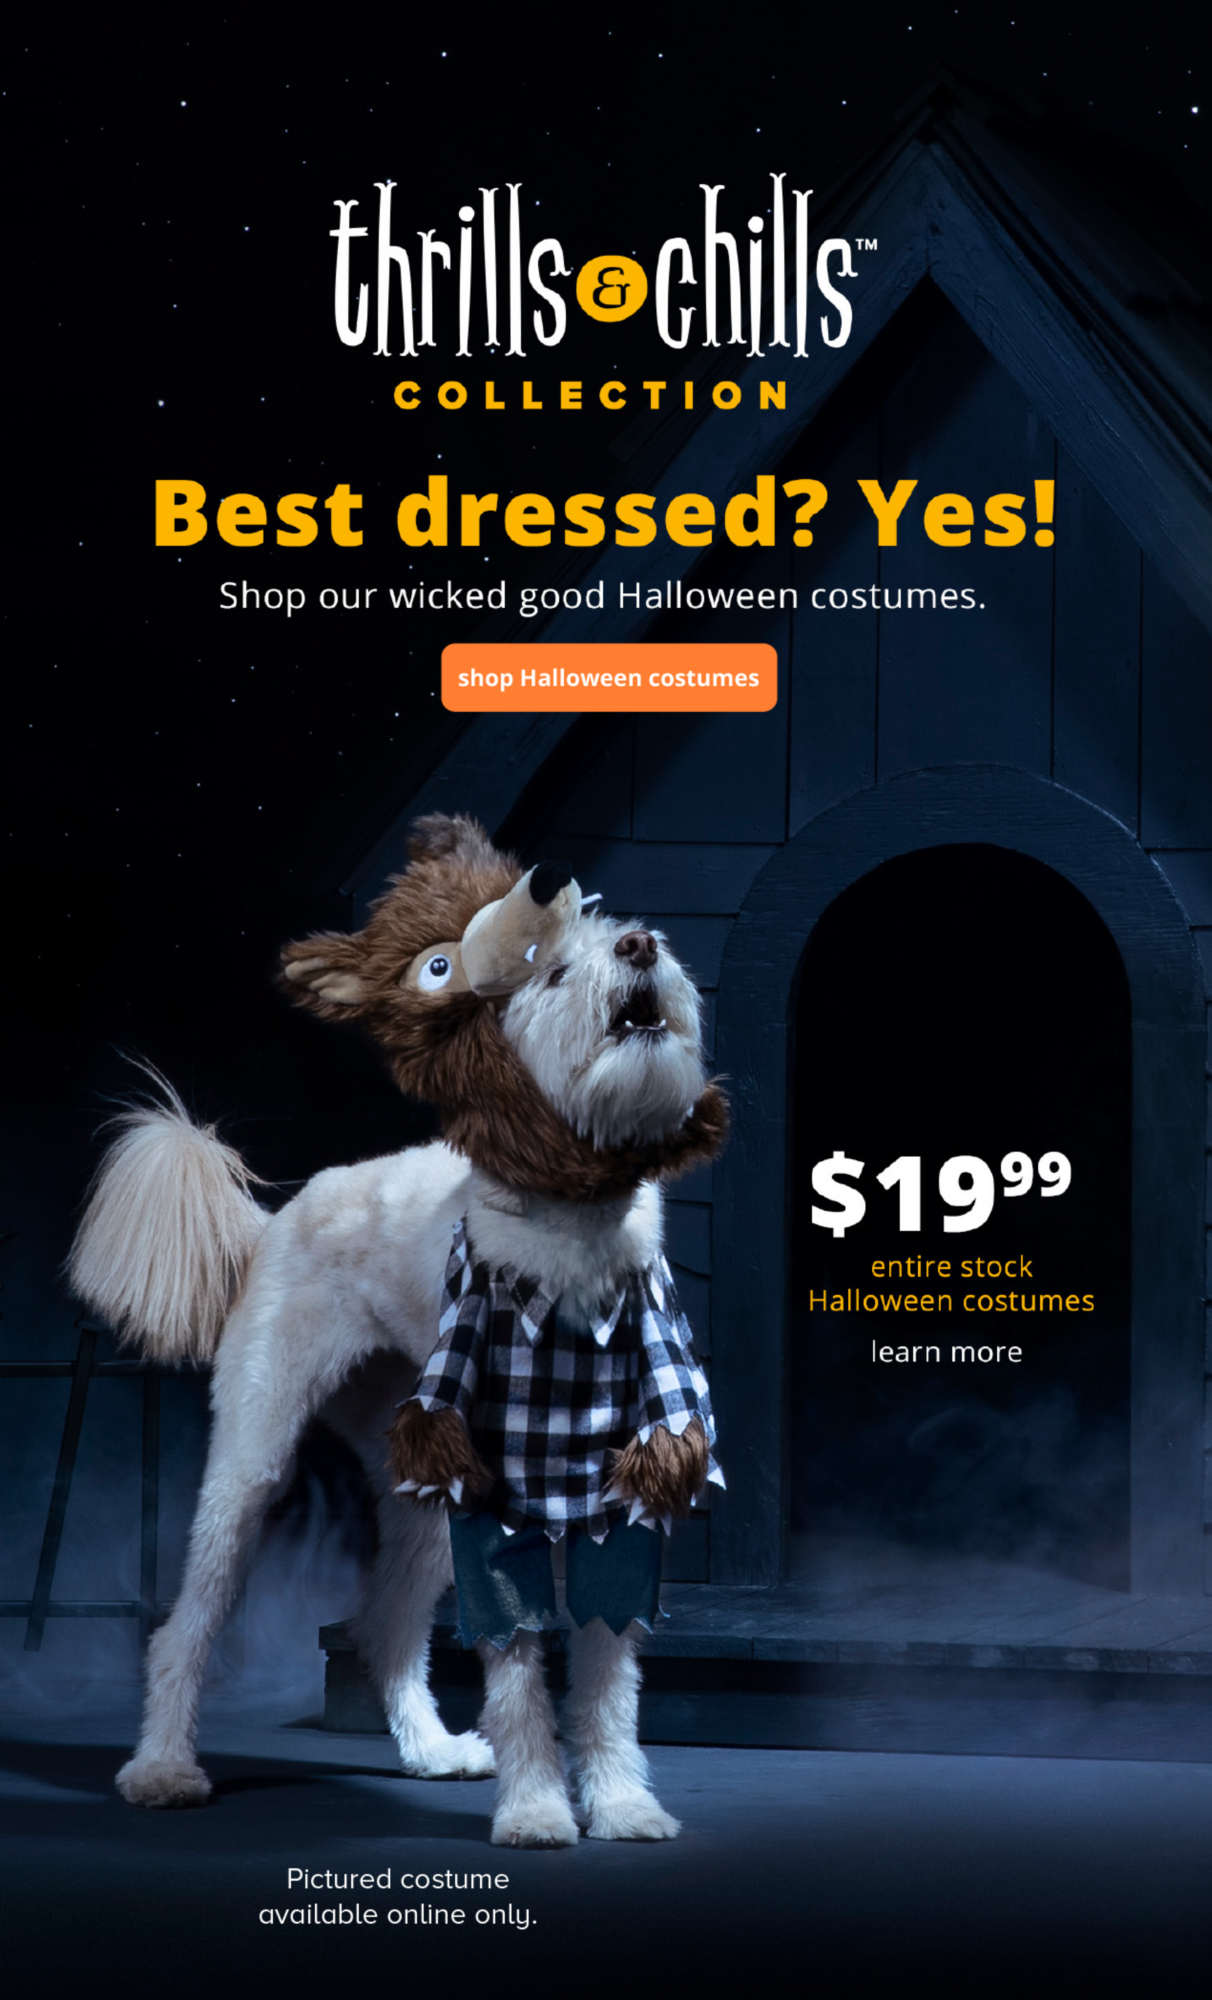 $19.99 Best dressed? Yes! Shop our wicked good Halloween costumes. entire stock Halloween costumes. Pictured costume available online only.